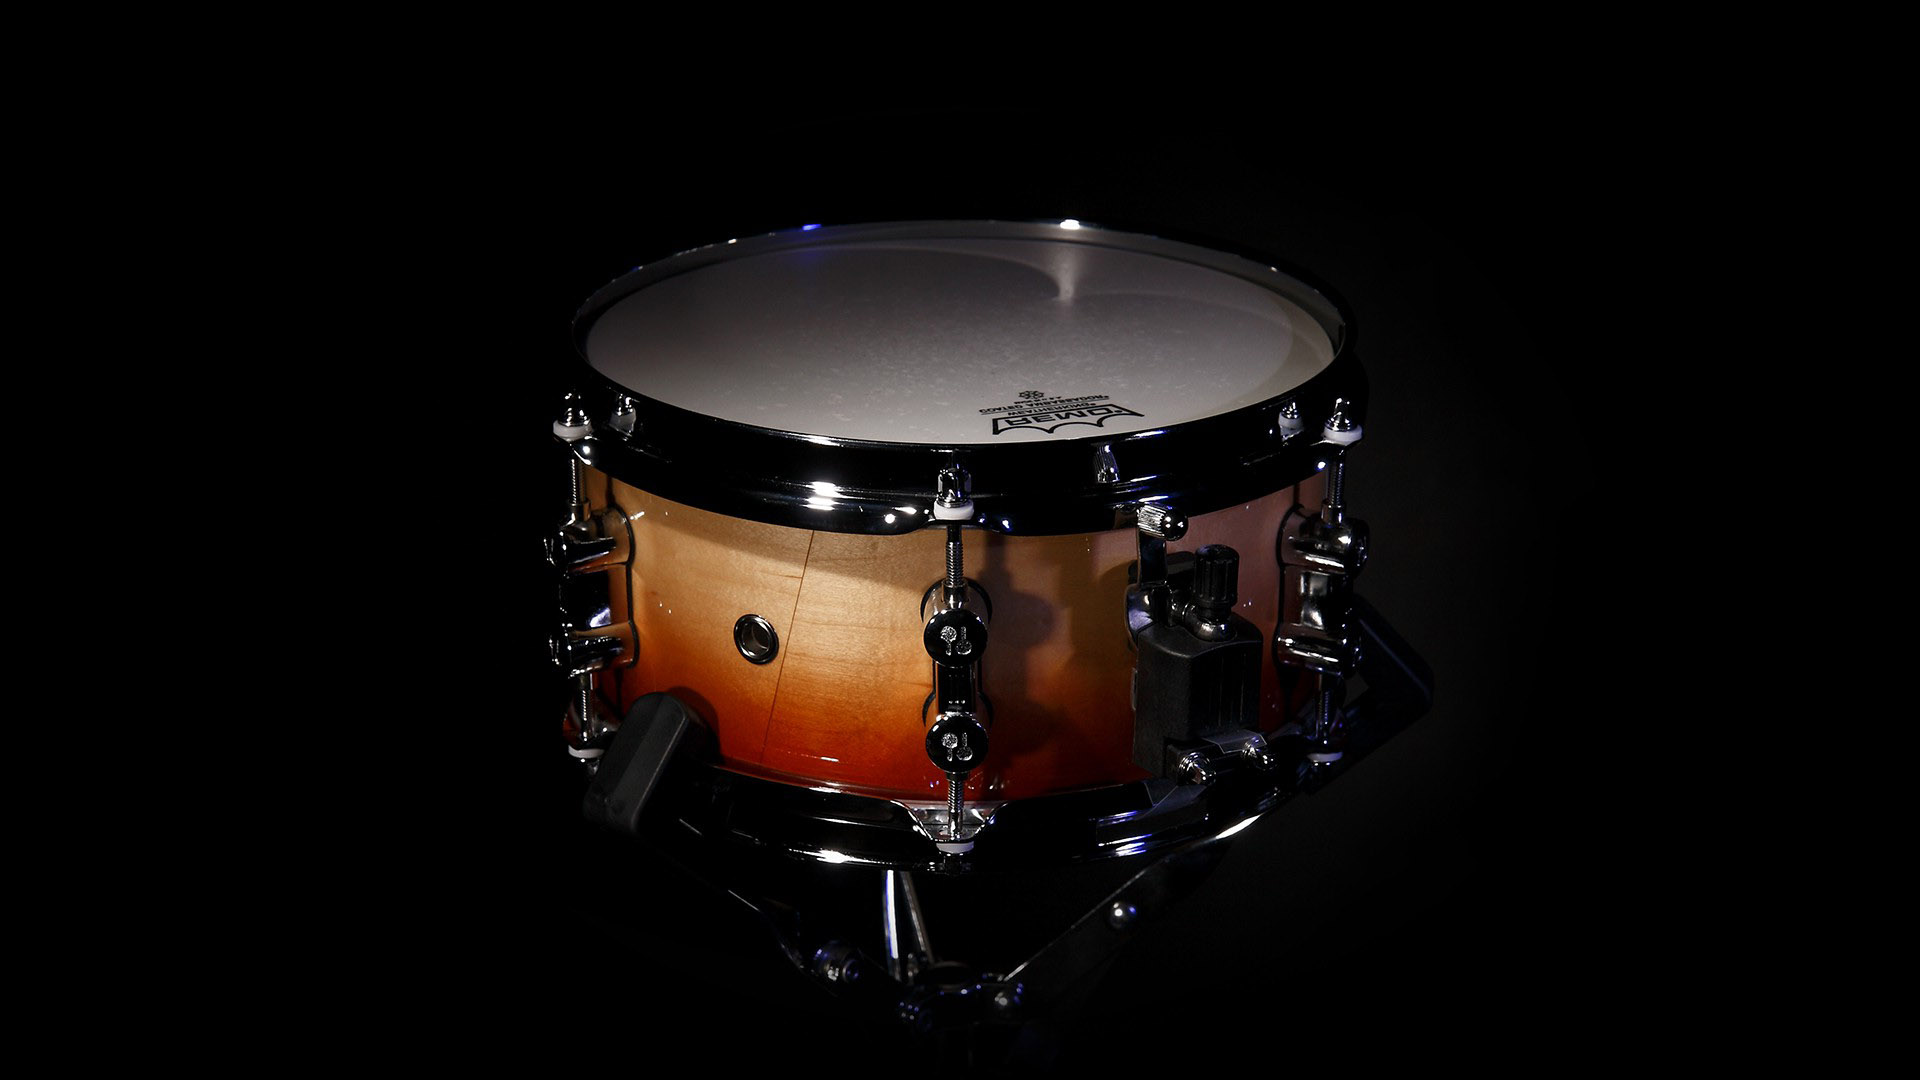 4k Drums Wallpapers High Quality Download Free